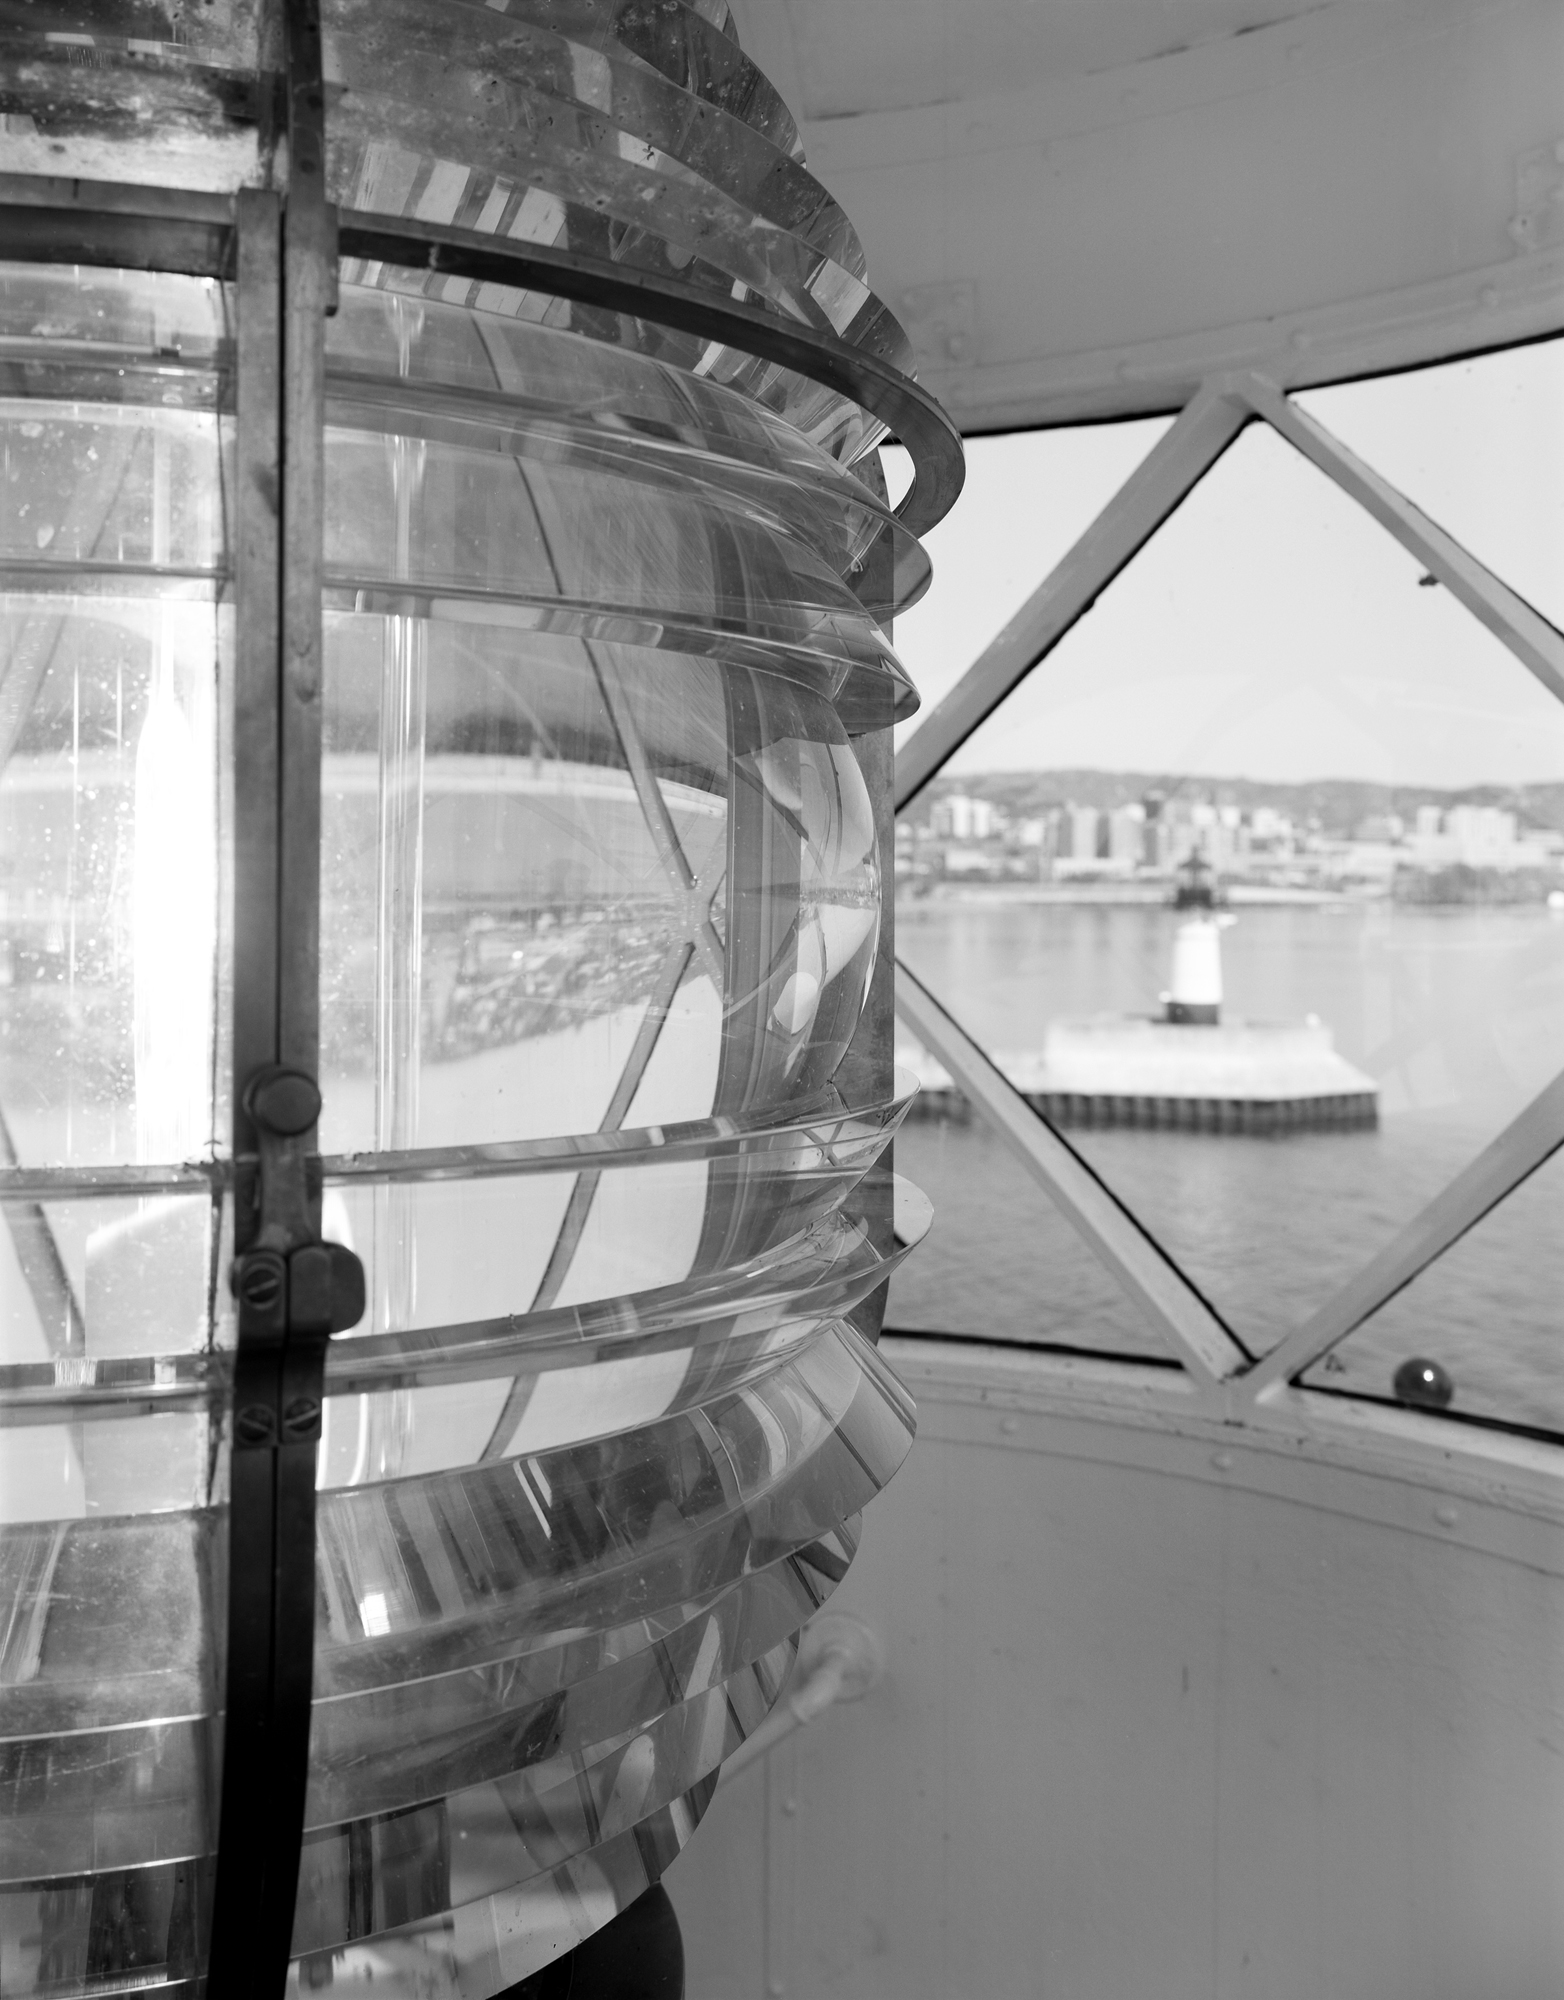 South Breakwater Light Fresnel Lens (North Pier Light in background) - SL-DUL-2003-10 (Please credit Daniel R. Pratt and the Minnesota Historic Property Record)